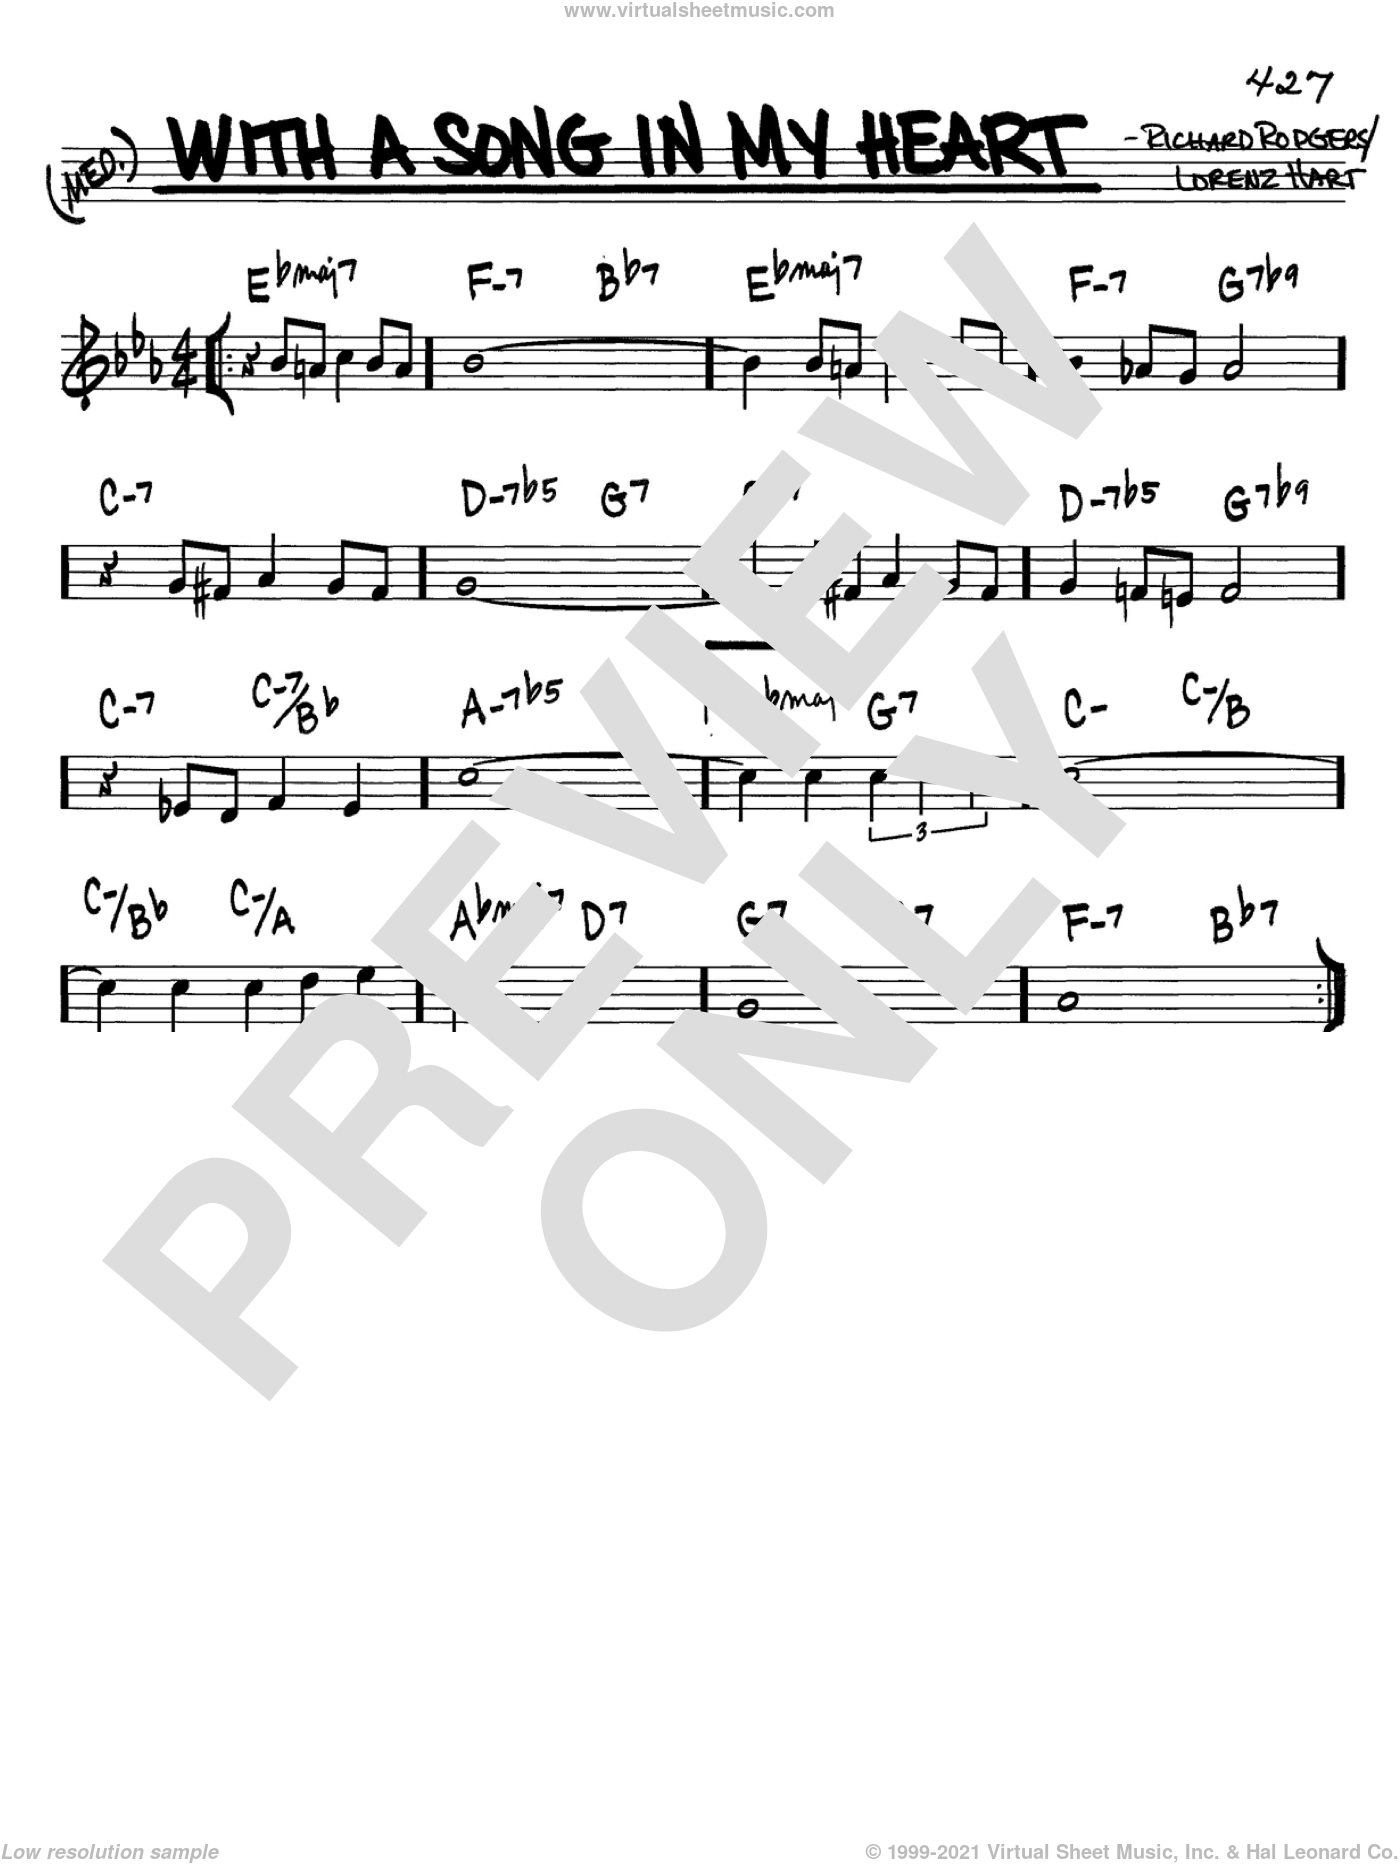 With A Song In My Heart sheet music for voice and other instruments (C) by Richard Rodgers